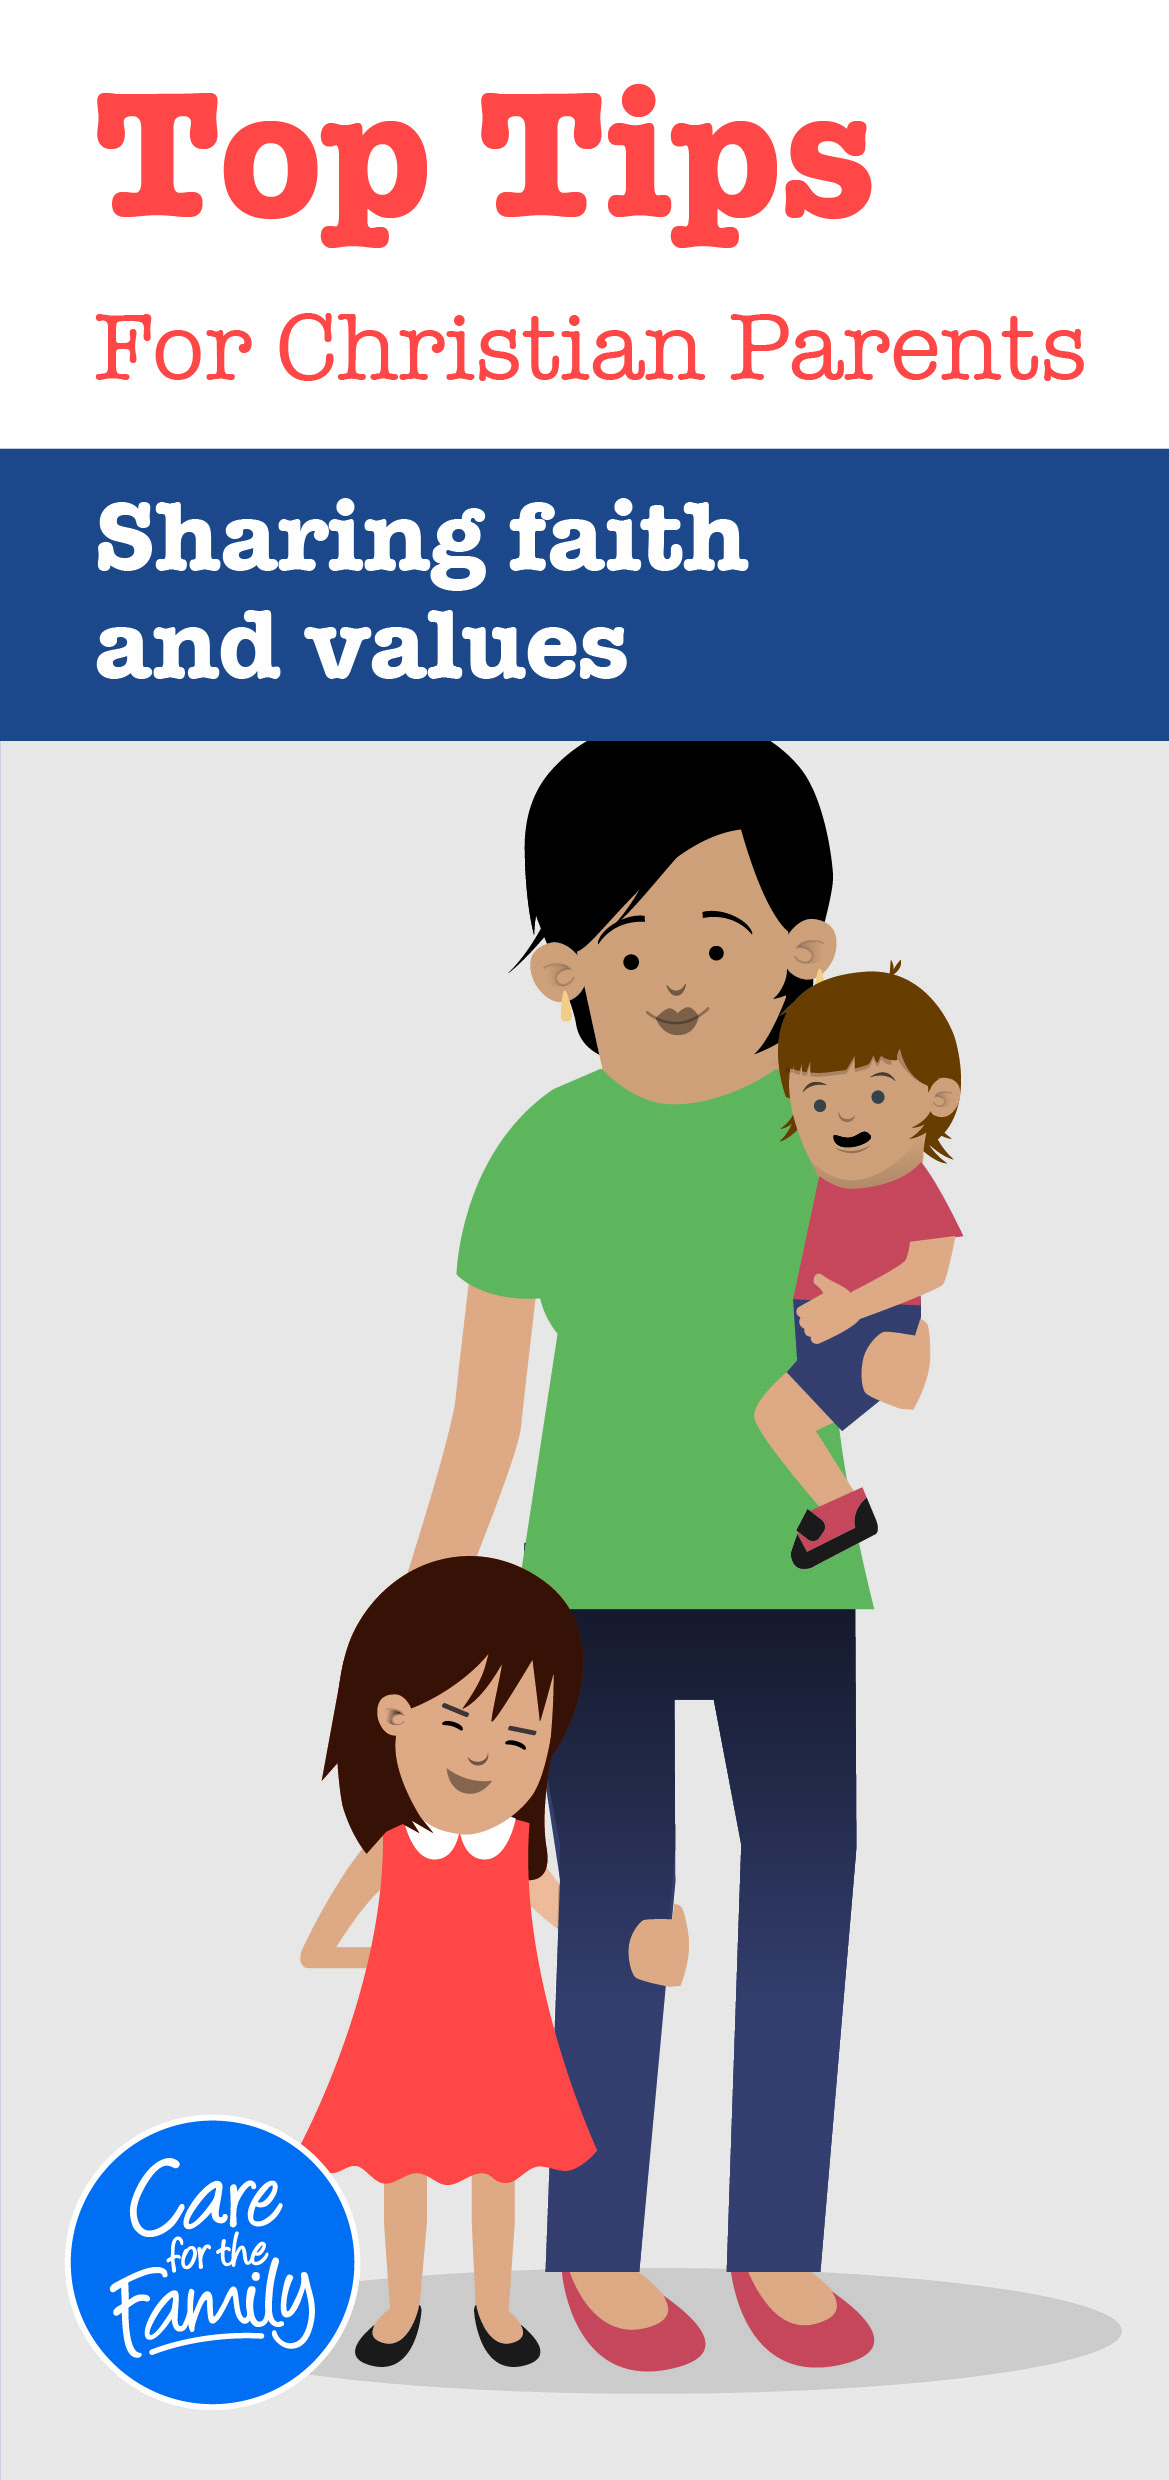 Top Tips for Christian Parents